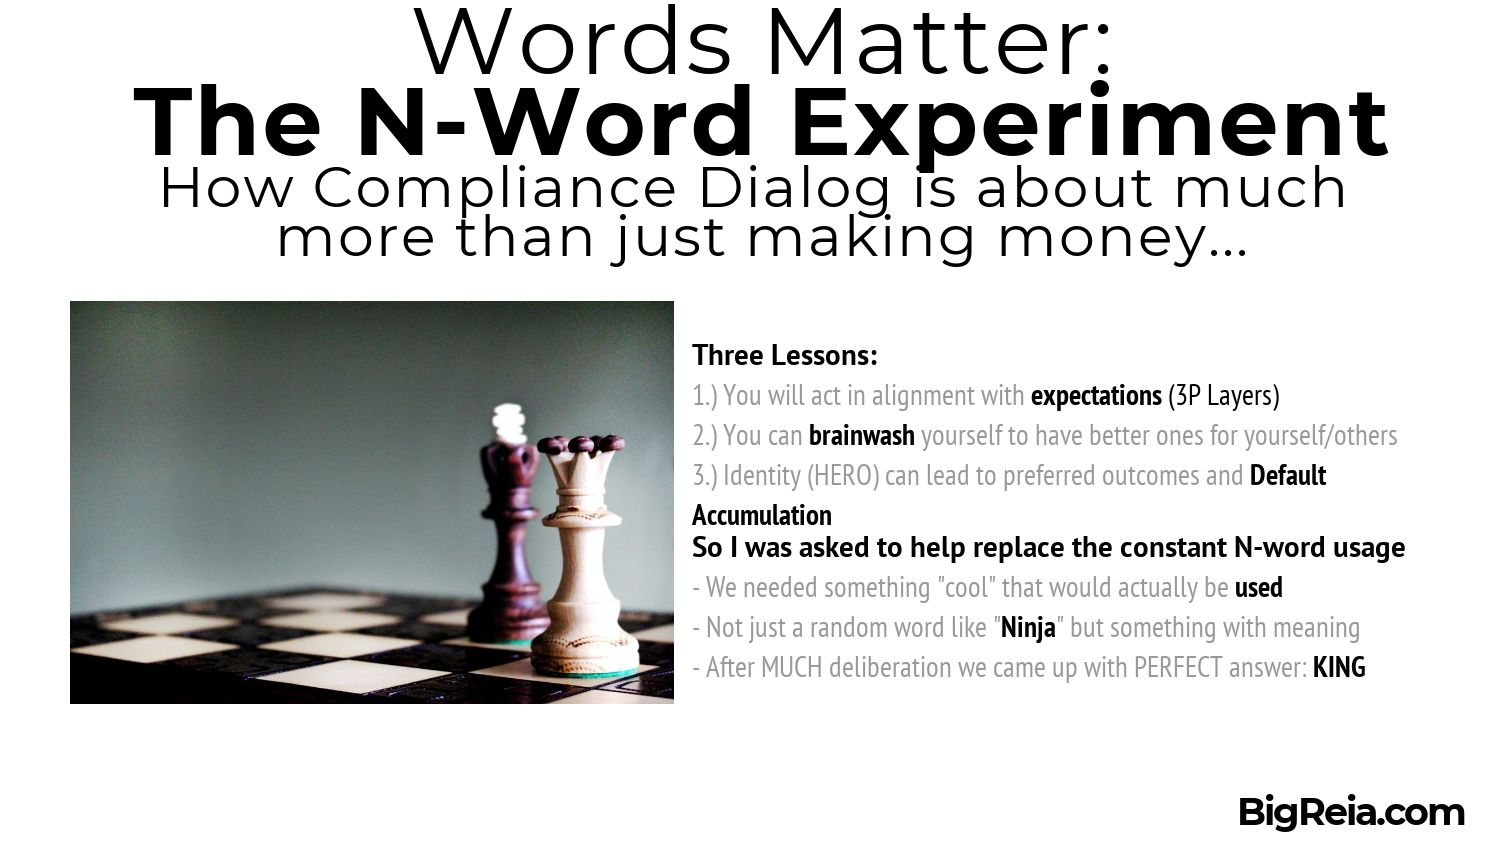 Replace Nword with KING